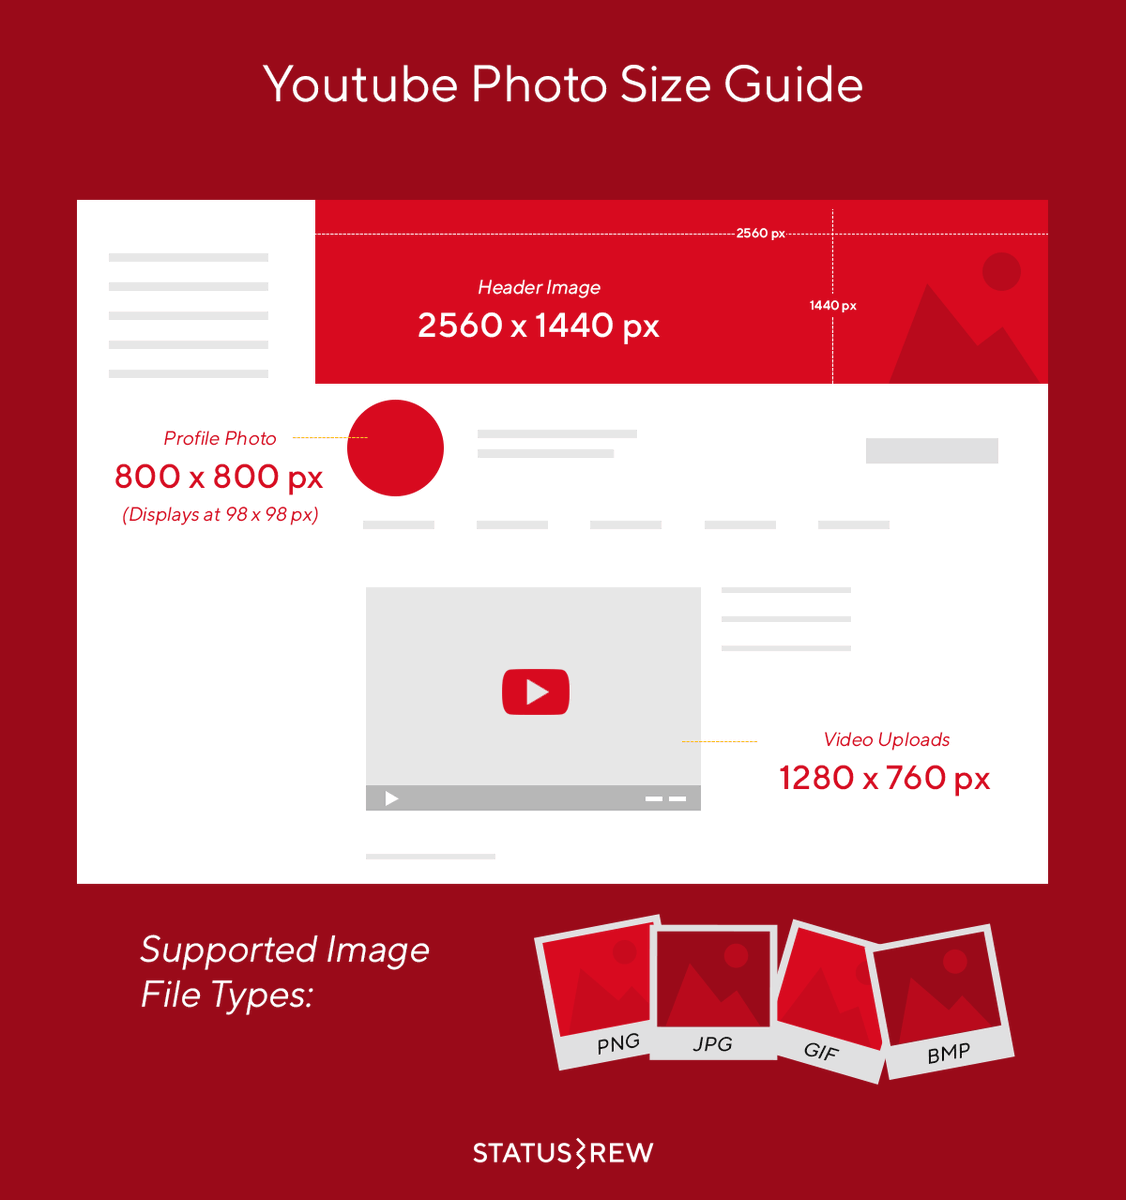 Videos are trending right now, and since they'll remain as such for years to come, YouTube is an incredible platform that more businesses should be using.  Make your #YouTube channel look incredible by using these ideal image sizes and dimensions. https://t.co/MLn8uiwxK0